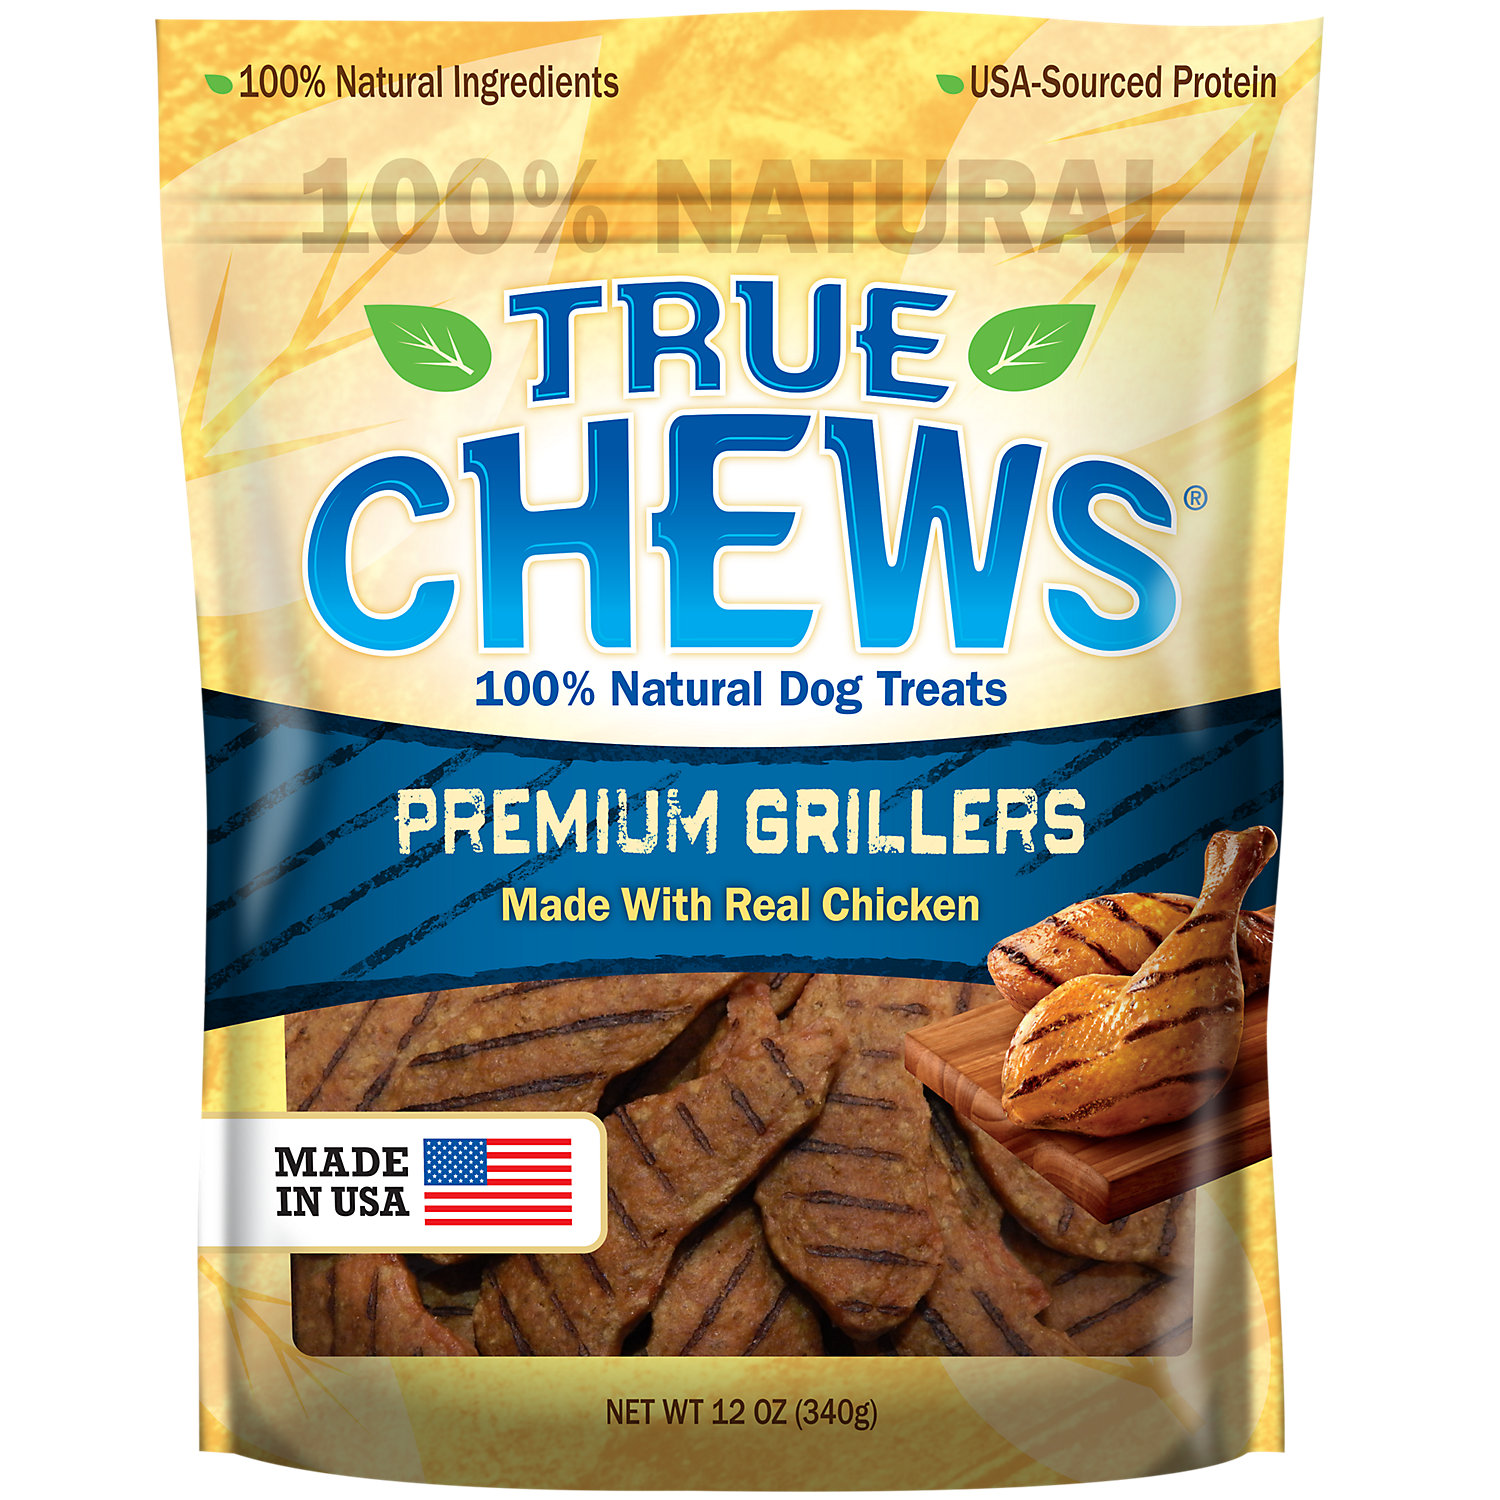 True Chews Premium Grillers Made With Real Chicken Dog Treats 12 Oz.